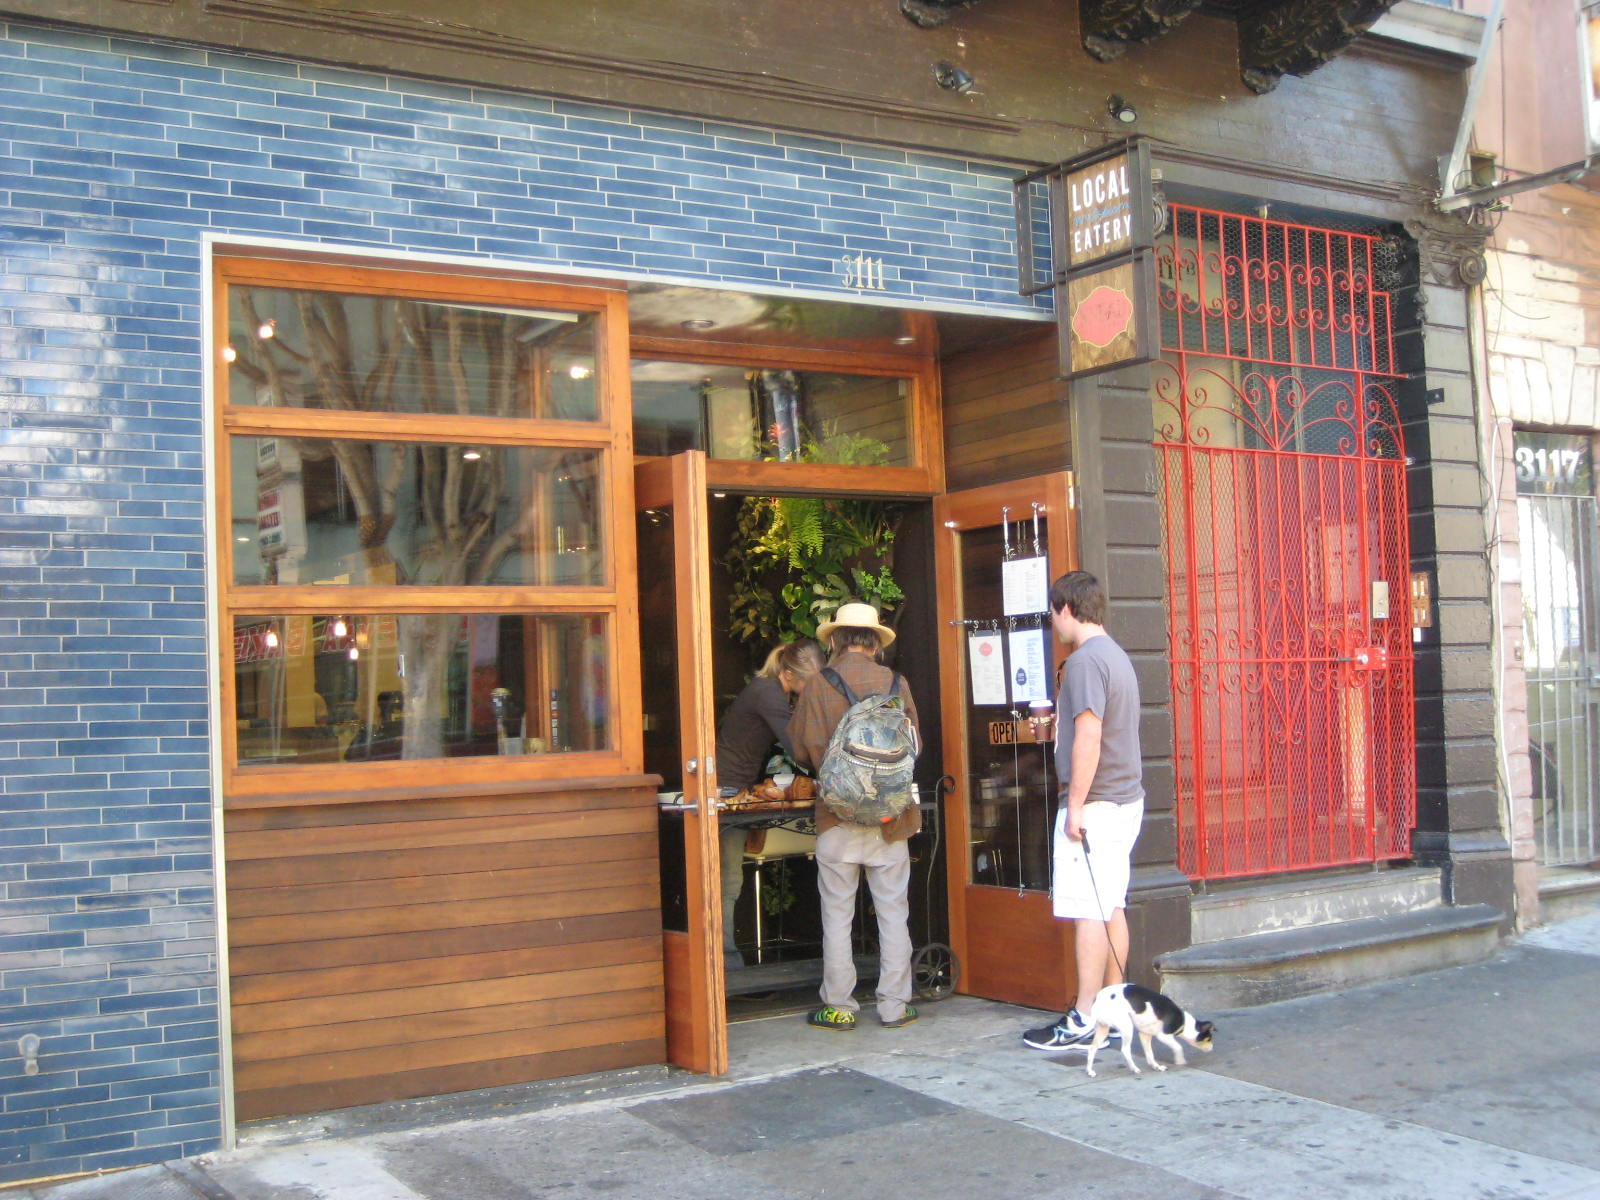 SF's Local Mission Eatery to Close